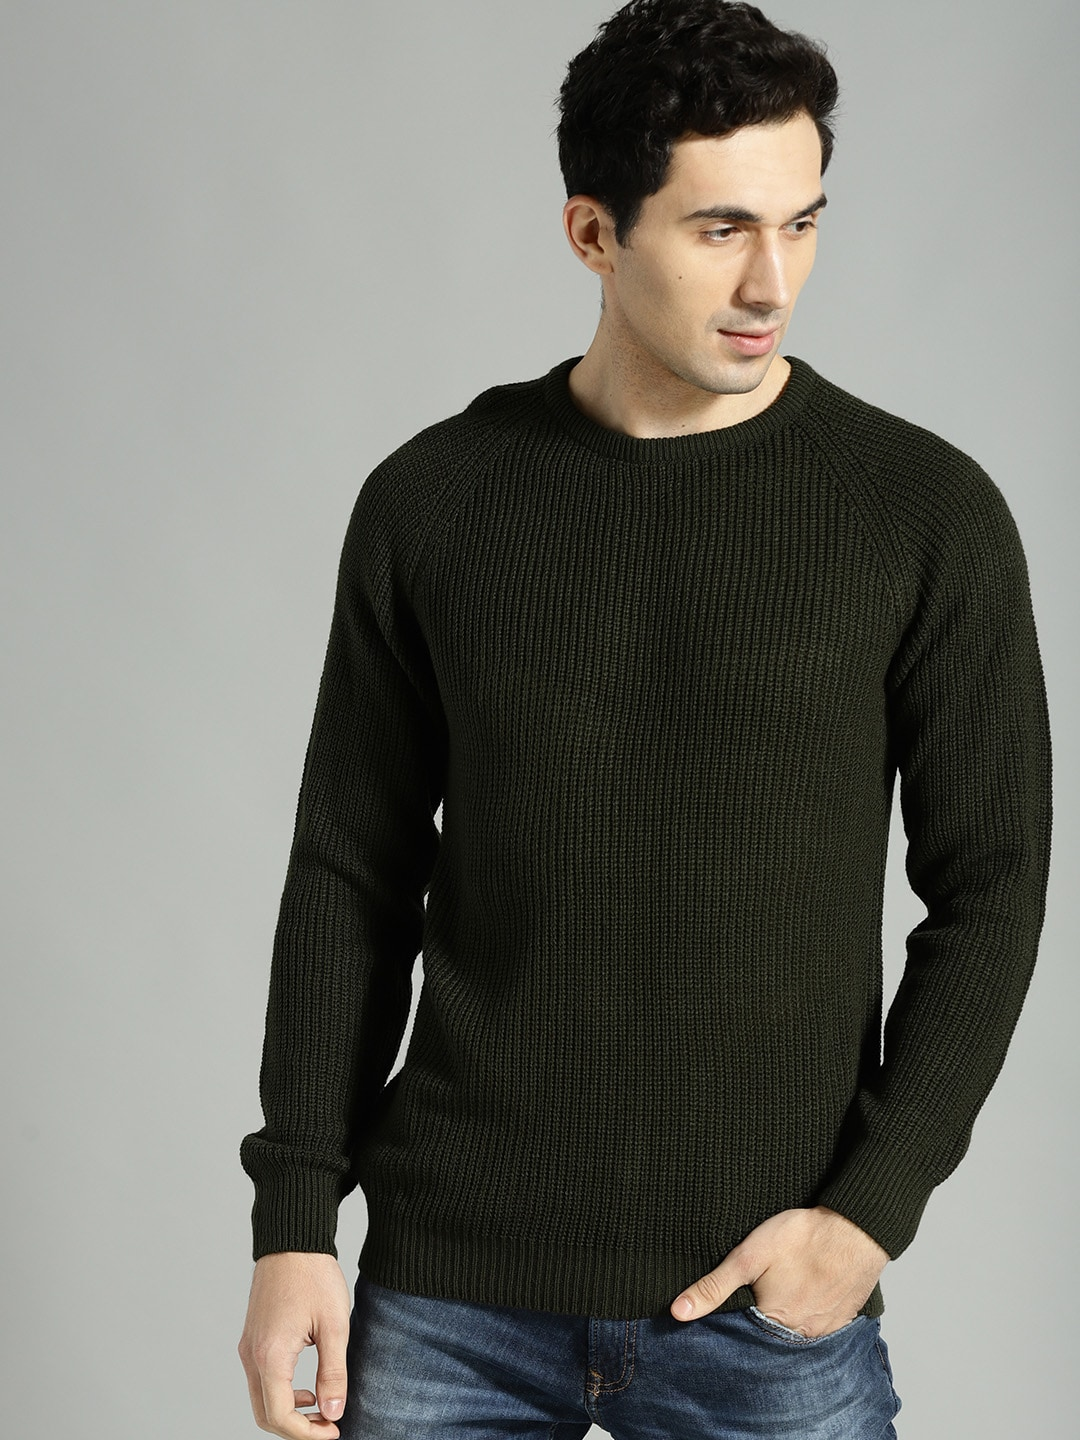 Sweaters for Men - Buy Mens Sweaters 8725af21b